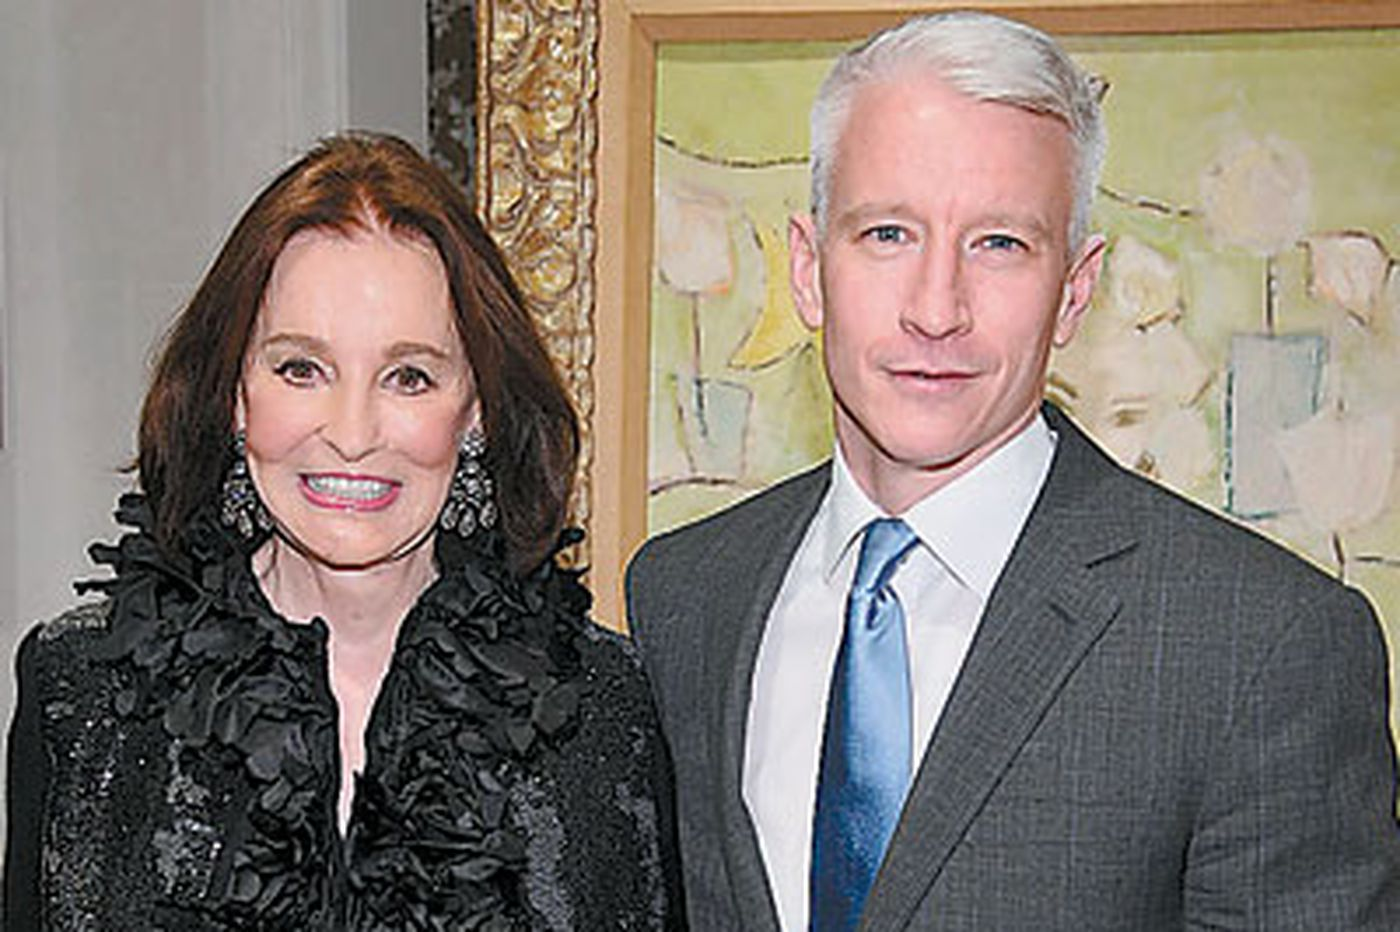 New talk show brings out Anderson Cooper's soft-news side